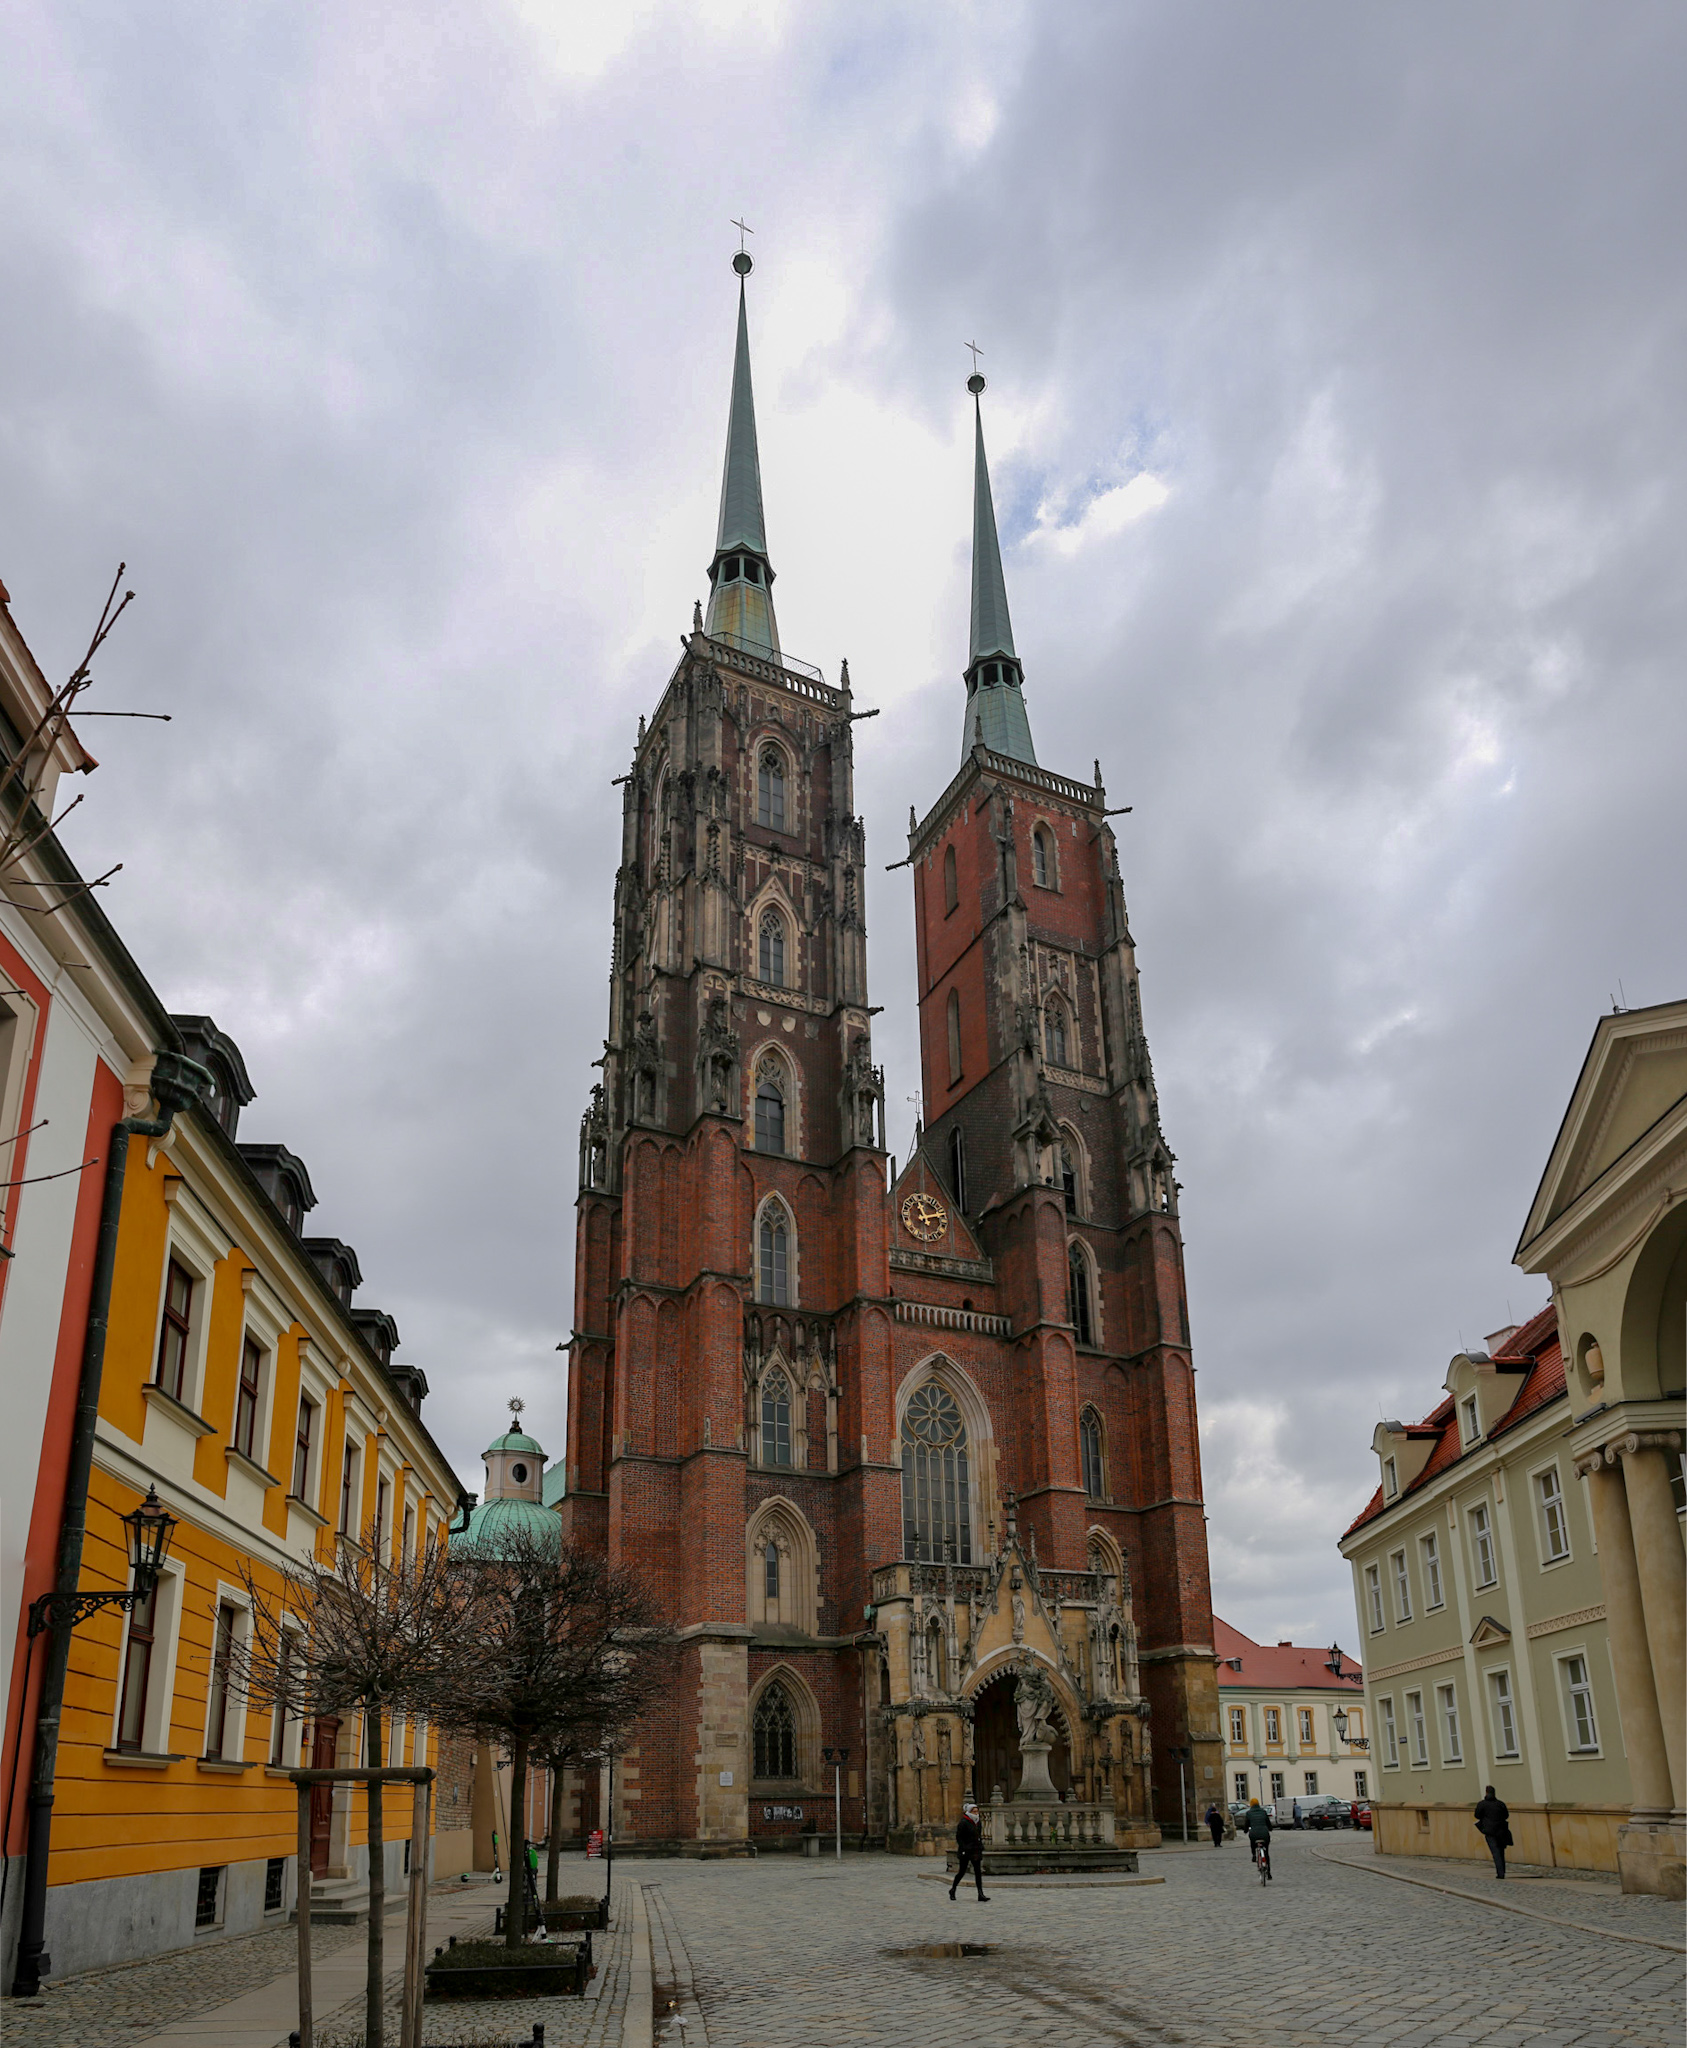 The Cathedral of St. John the Baptist in Wrocław